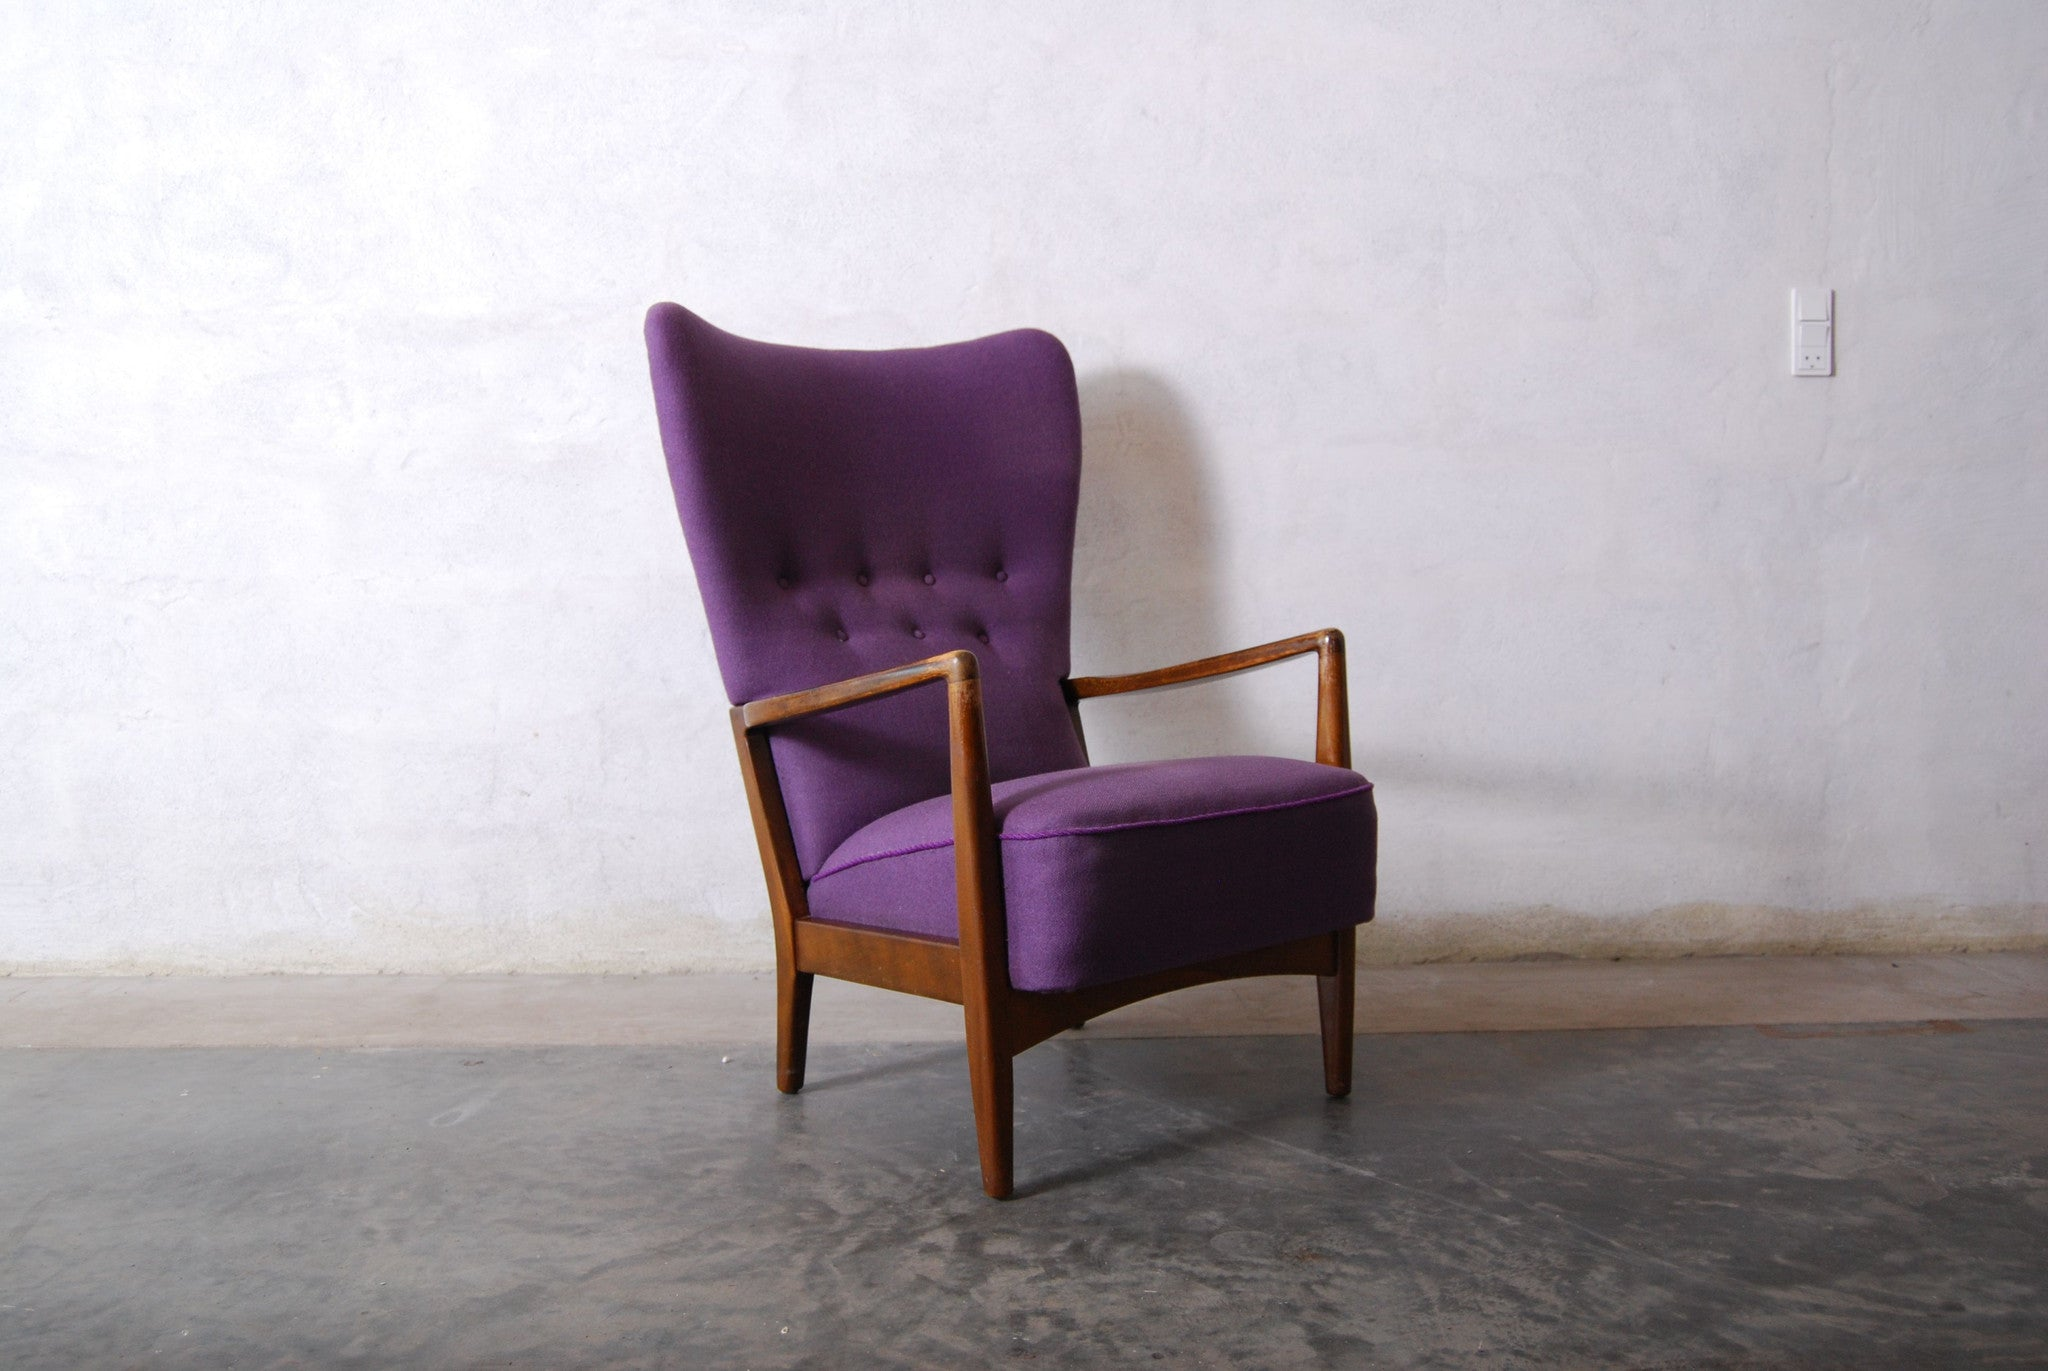 Chase & Sorensen Wingback lounge chair by Brge Christoffersen